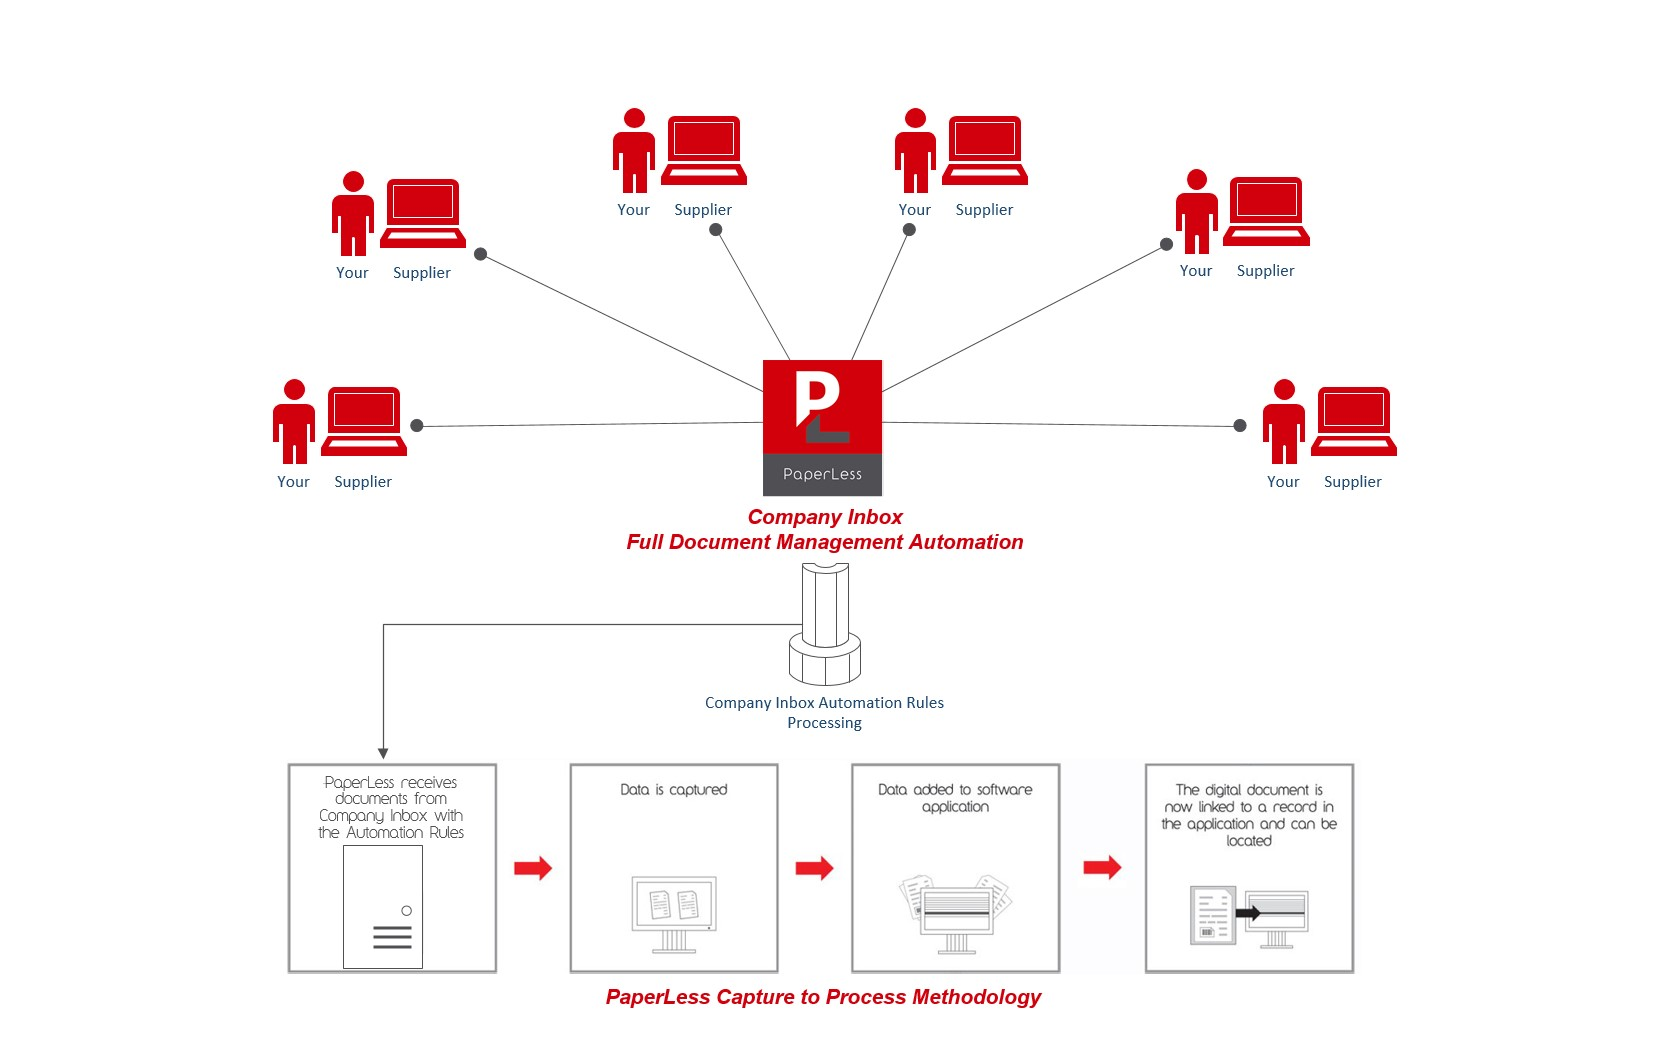 Know more about PaperLess Company Inbox